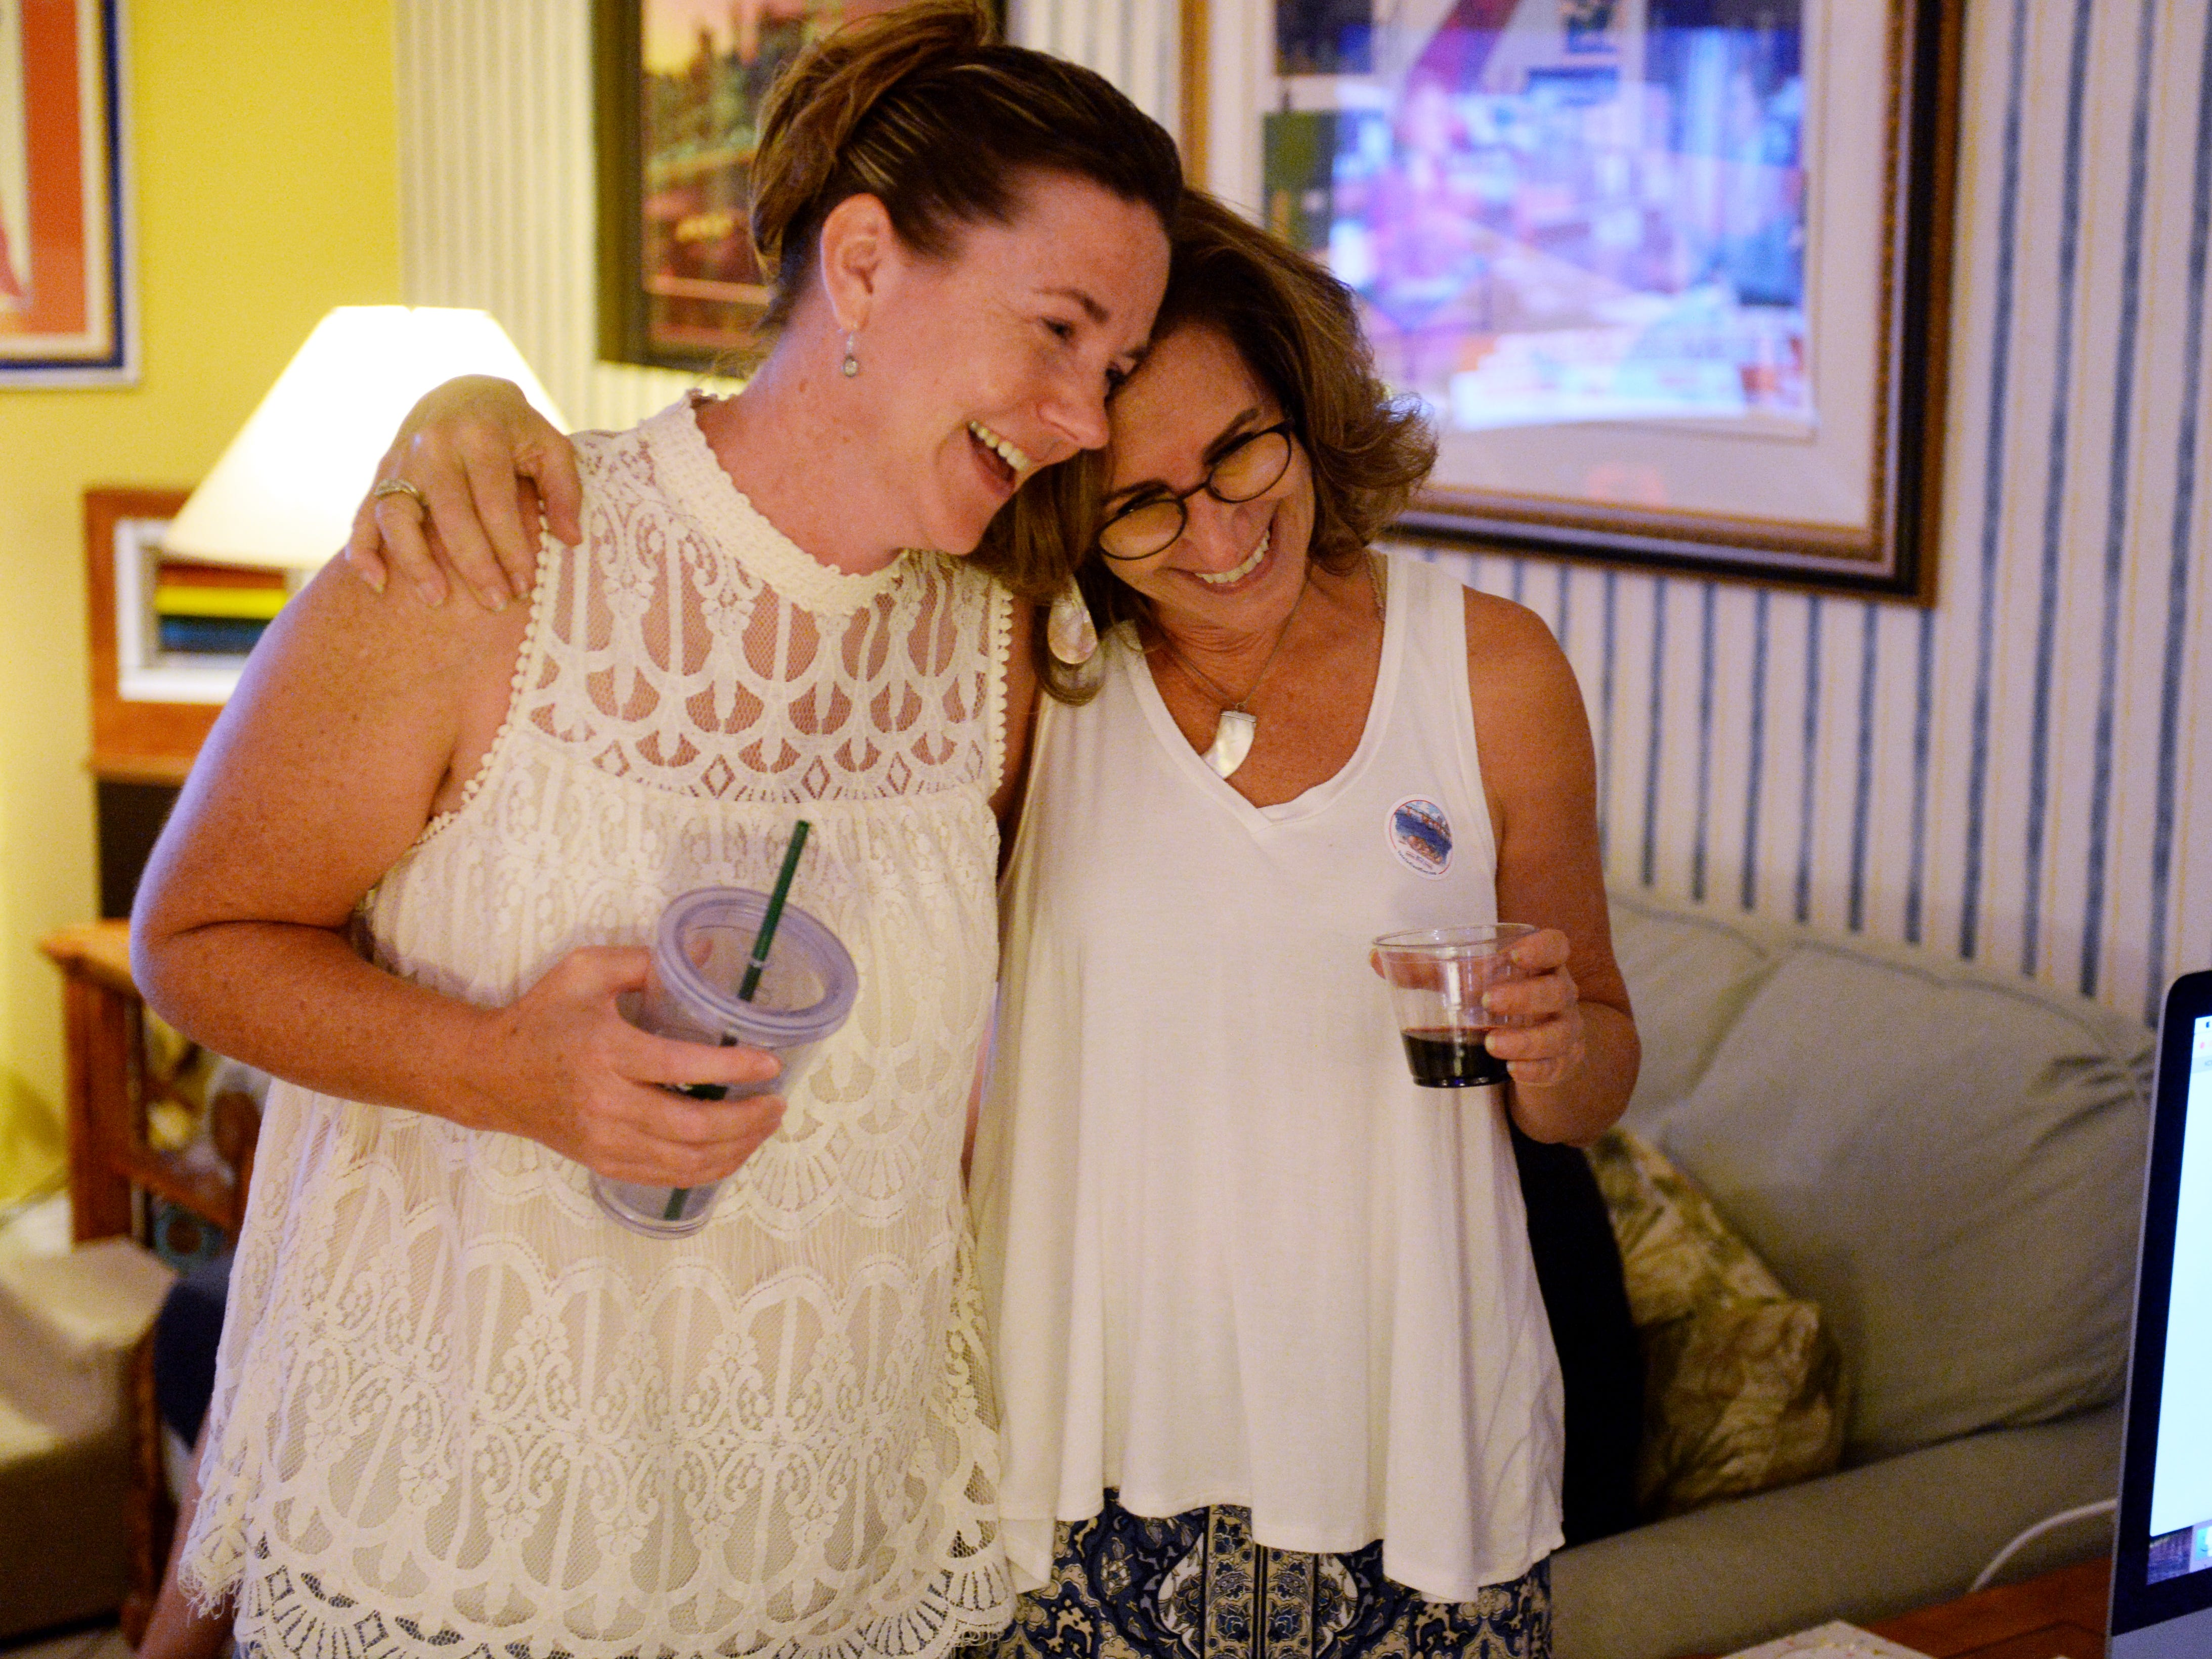 Indian River School Board District 4 candidate Stacey Klim (left) hugs School Board District 1 candidate Mara Schiff on Tuesday, Aug. 28, 2018 during an election party in Vero Beach. Klim will face Teri Barenborg in a runoff election in November. Schiff beat Eugene Wolff to claim the District 1 seat.